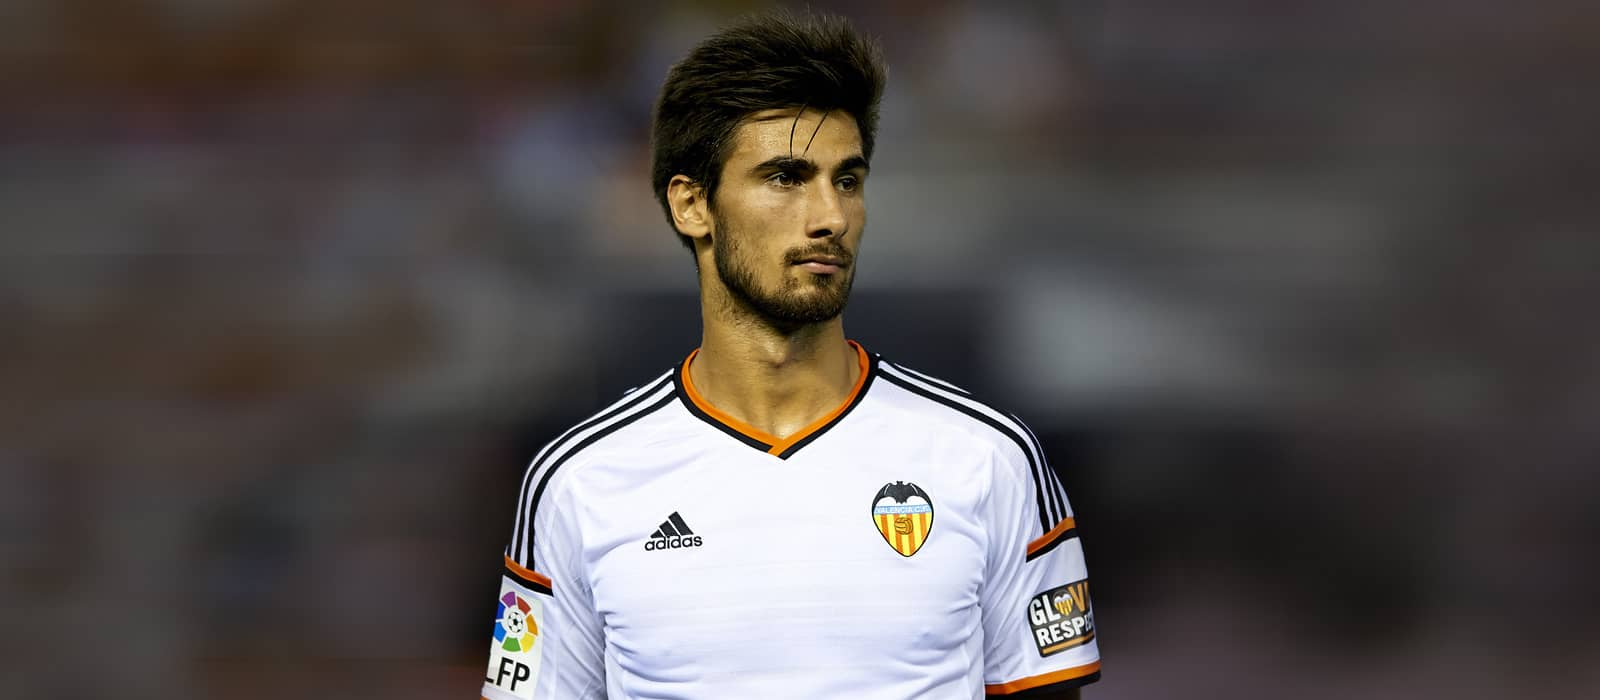 Guillem Balague confirms Manchester United interest in Andre Gomes